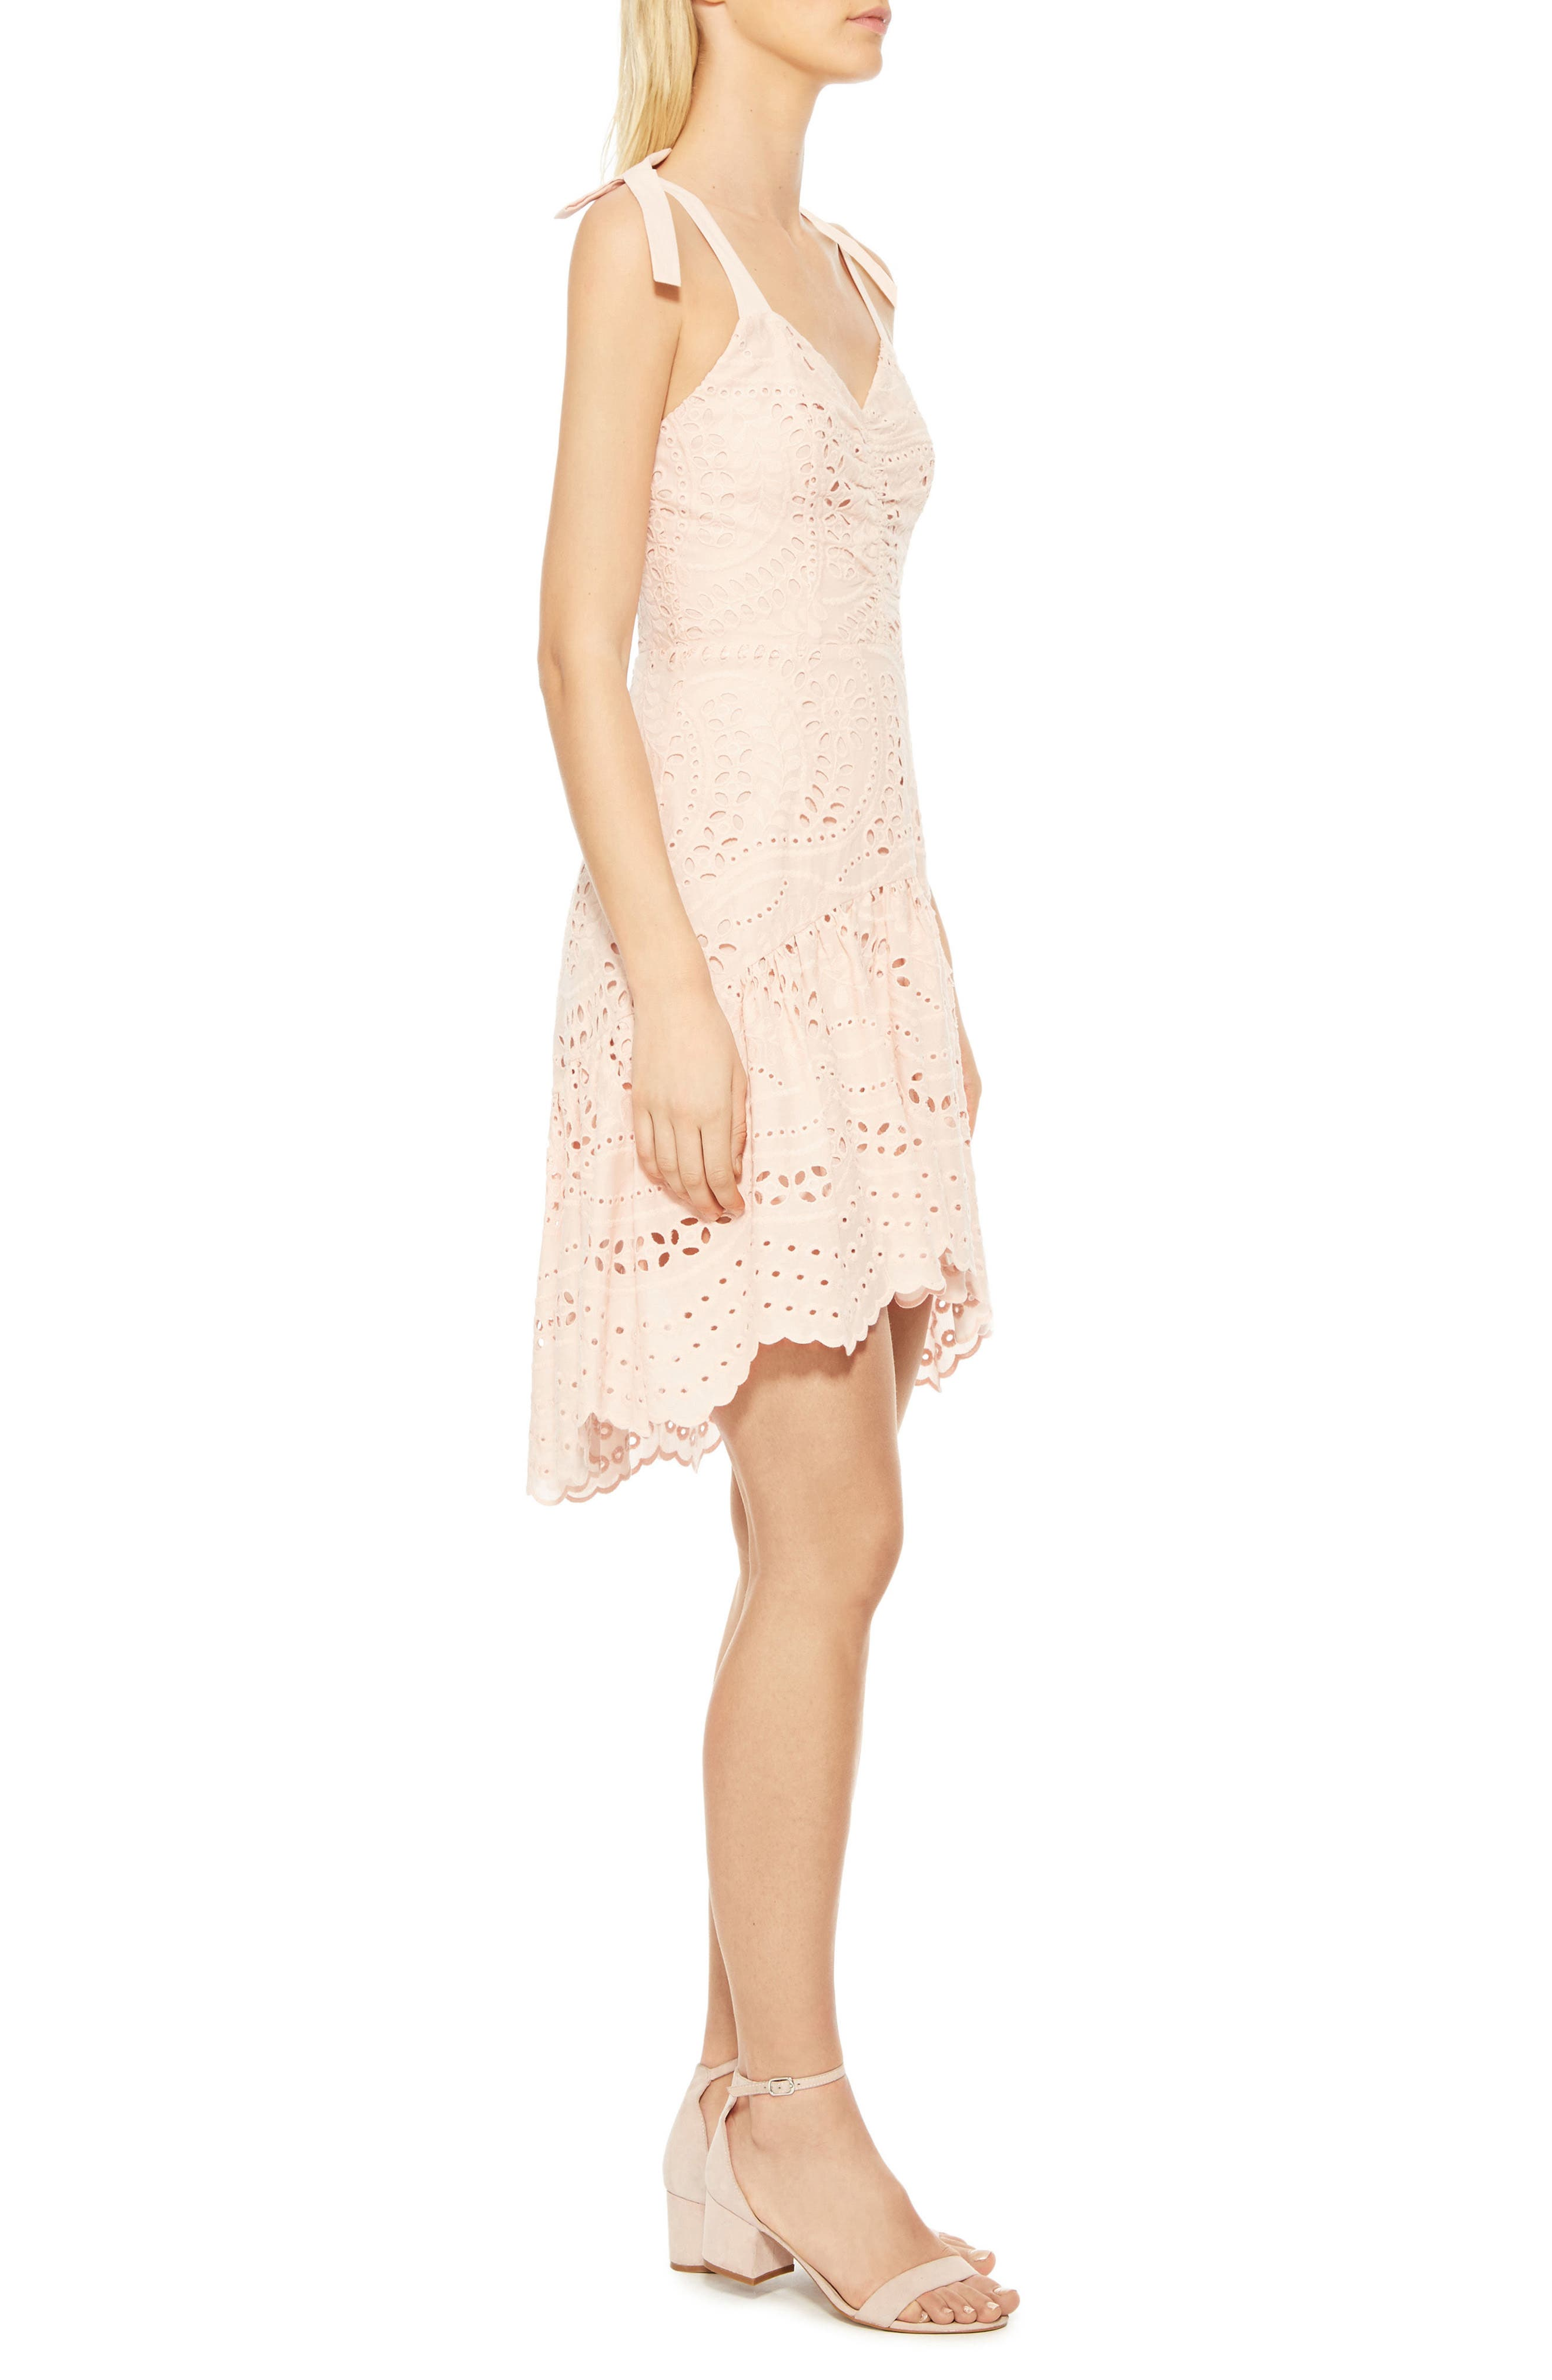 Odysseia Eyelet Cotton Dress,                             Alternate thumbnail 3, color,                             Pearl Blush